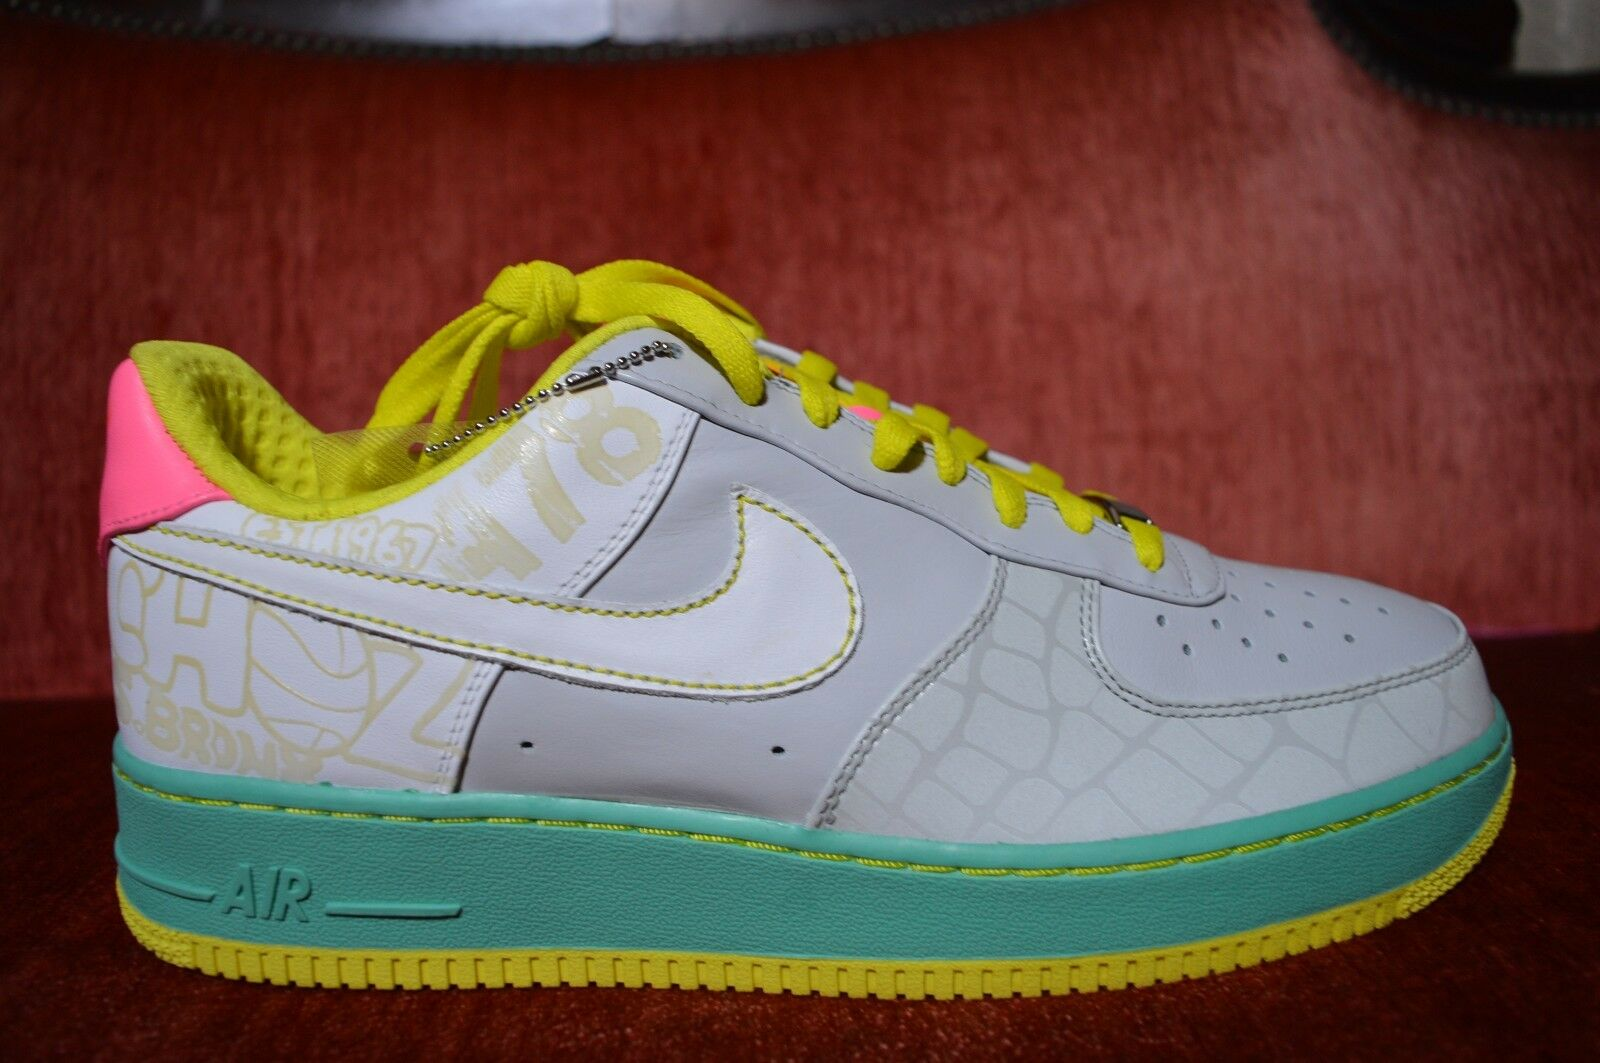 Nike Women's Size 12 Air Force 1 Premium '07 315186 011 Easter Cement White